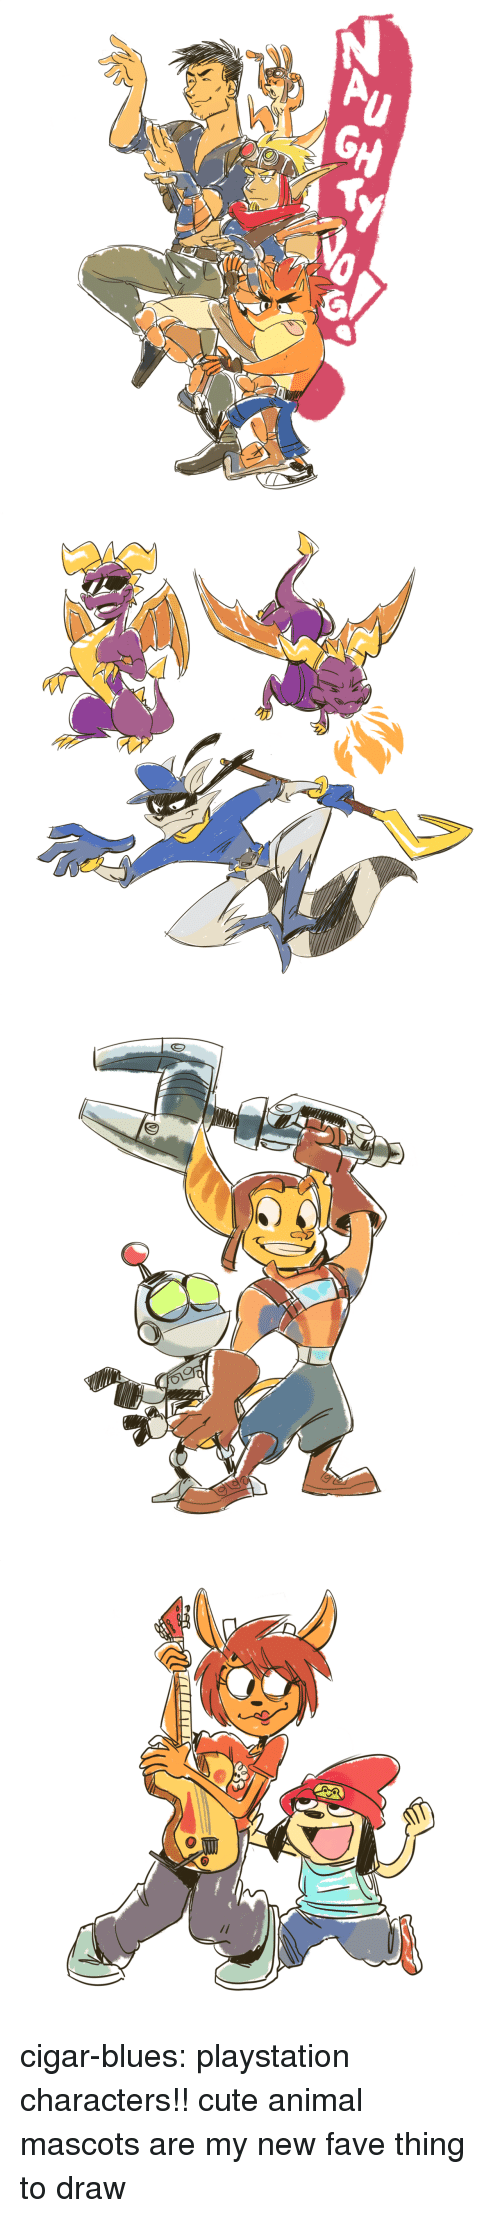 mascots: cigar-blues:  playstation characters!! cute animal mascots are my new fave thing to draw